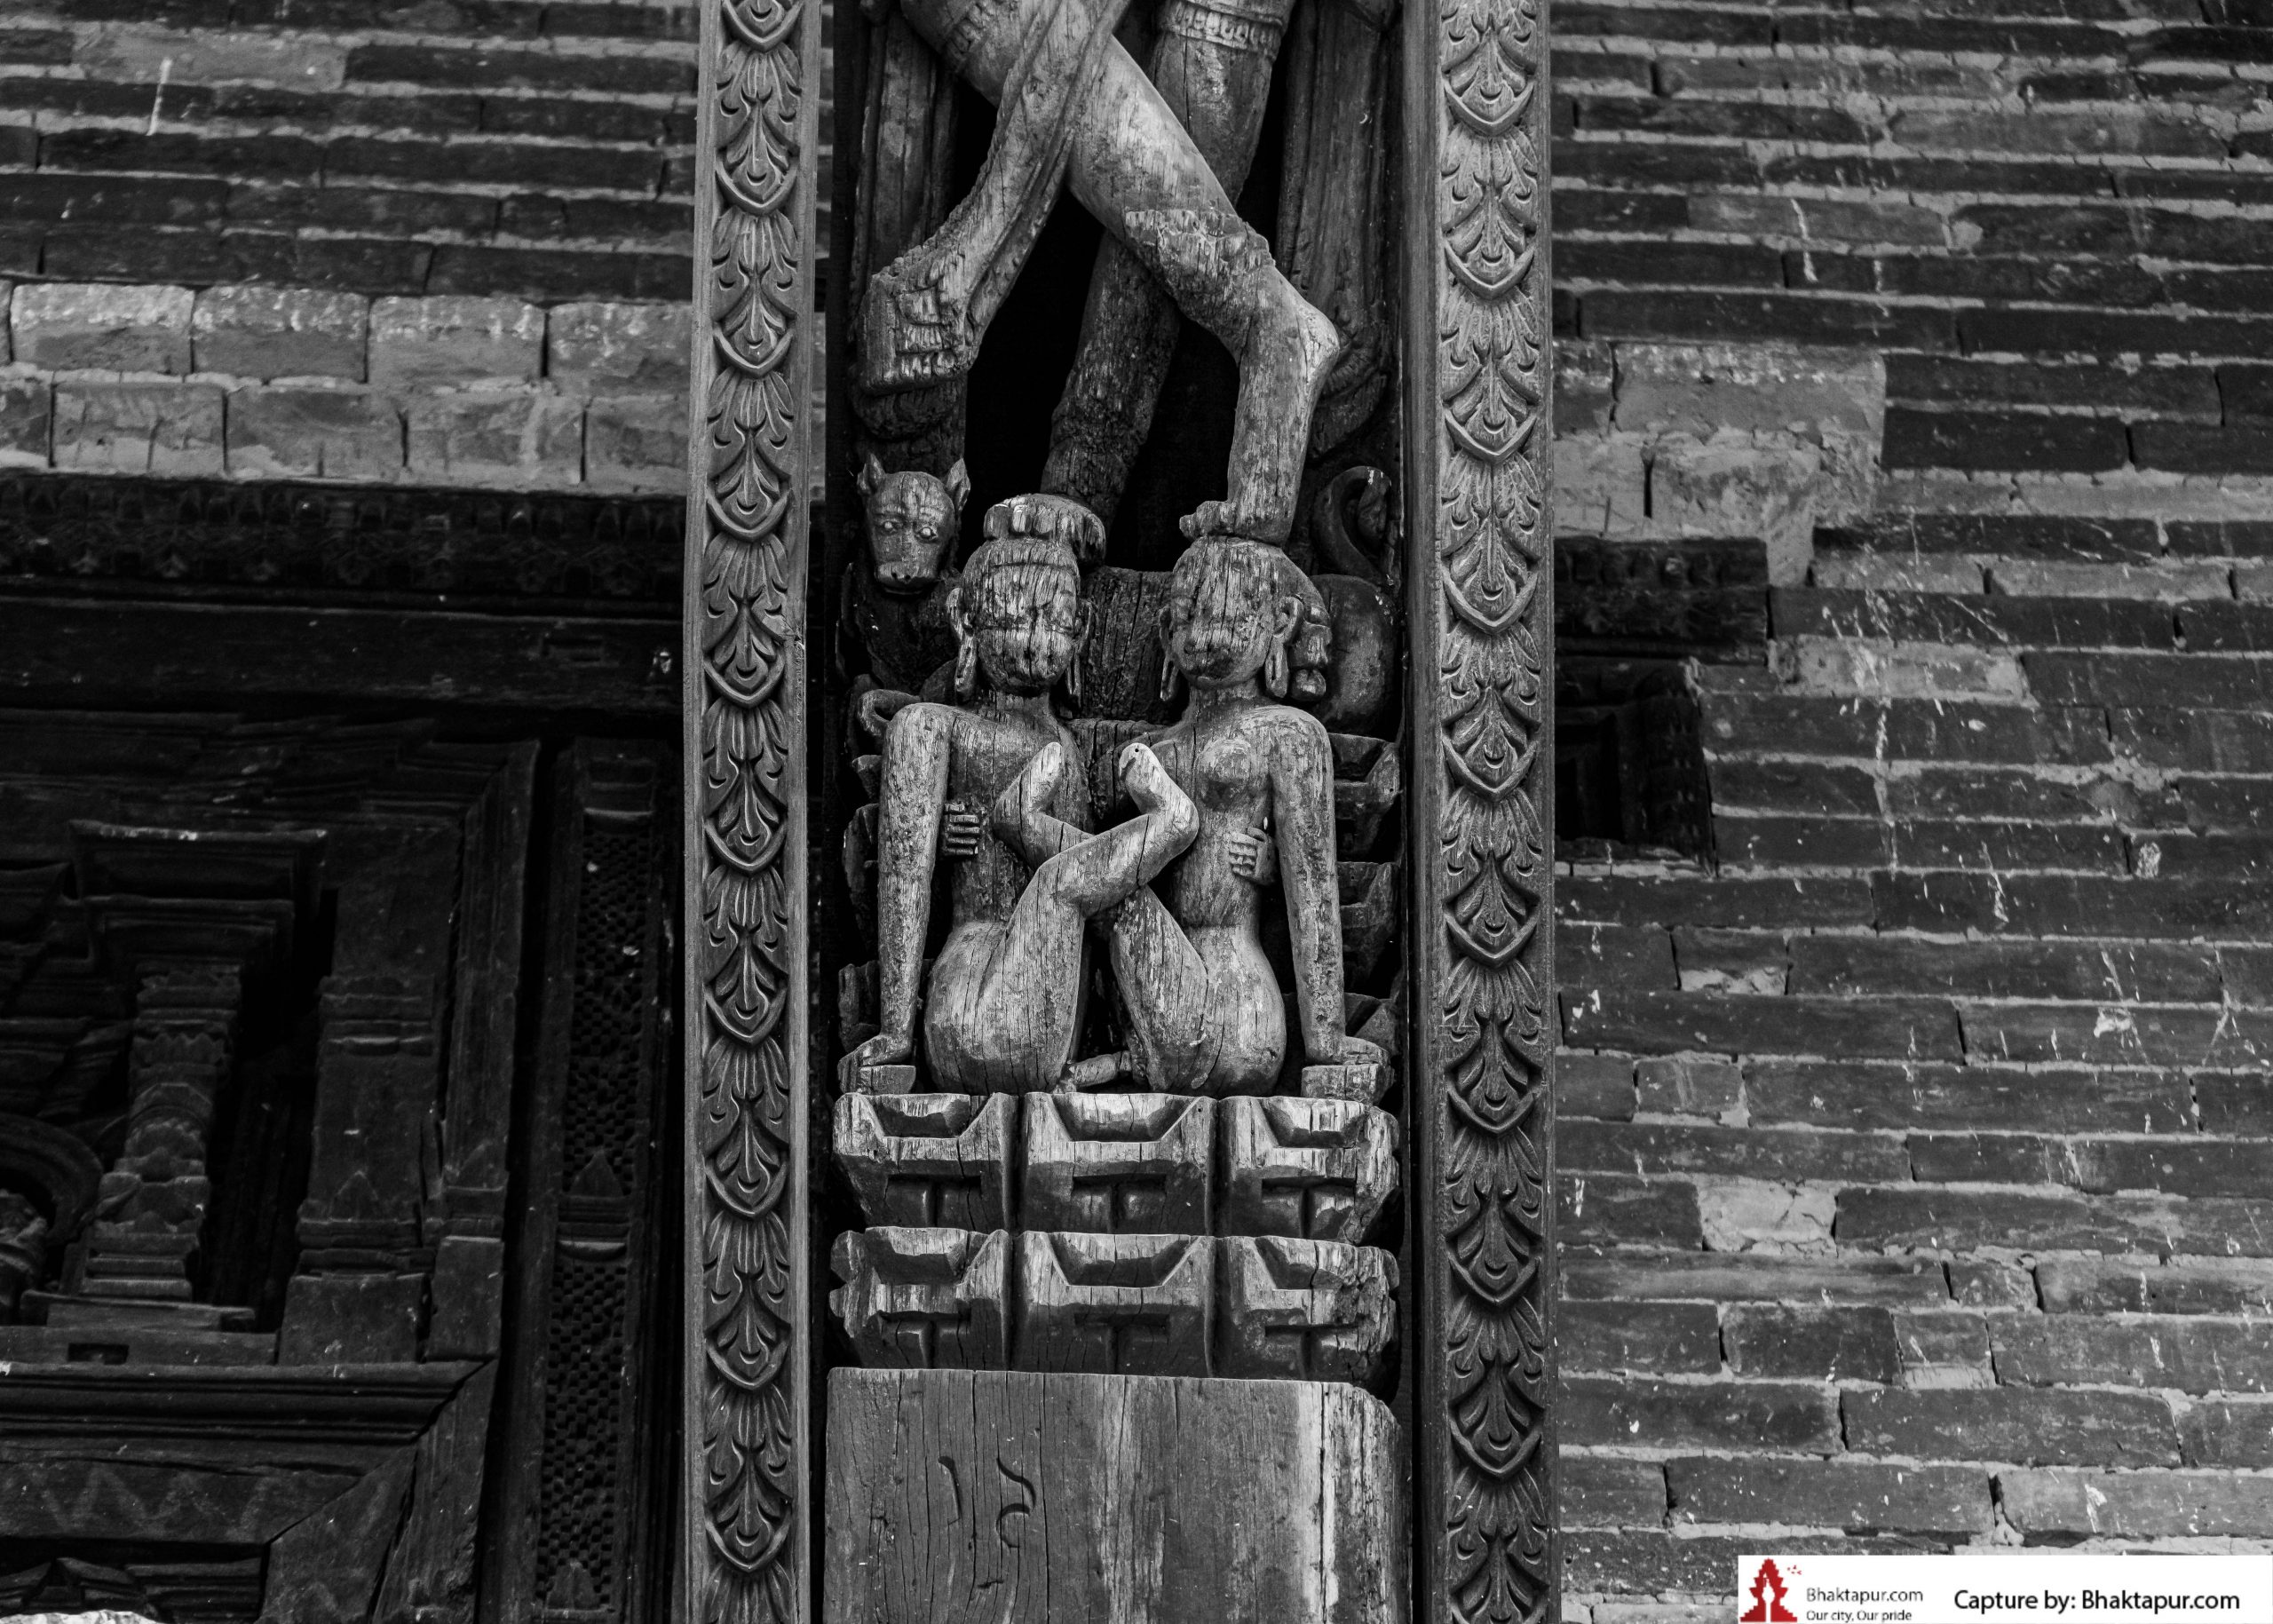 https://www.bhaktapur.com/wp-content/uploads/2021/08/erotic-carving-100-of-137-scaled.jpg